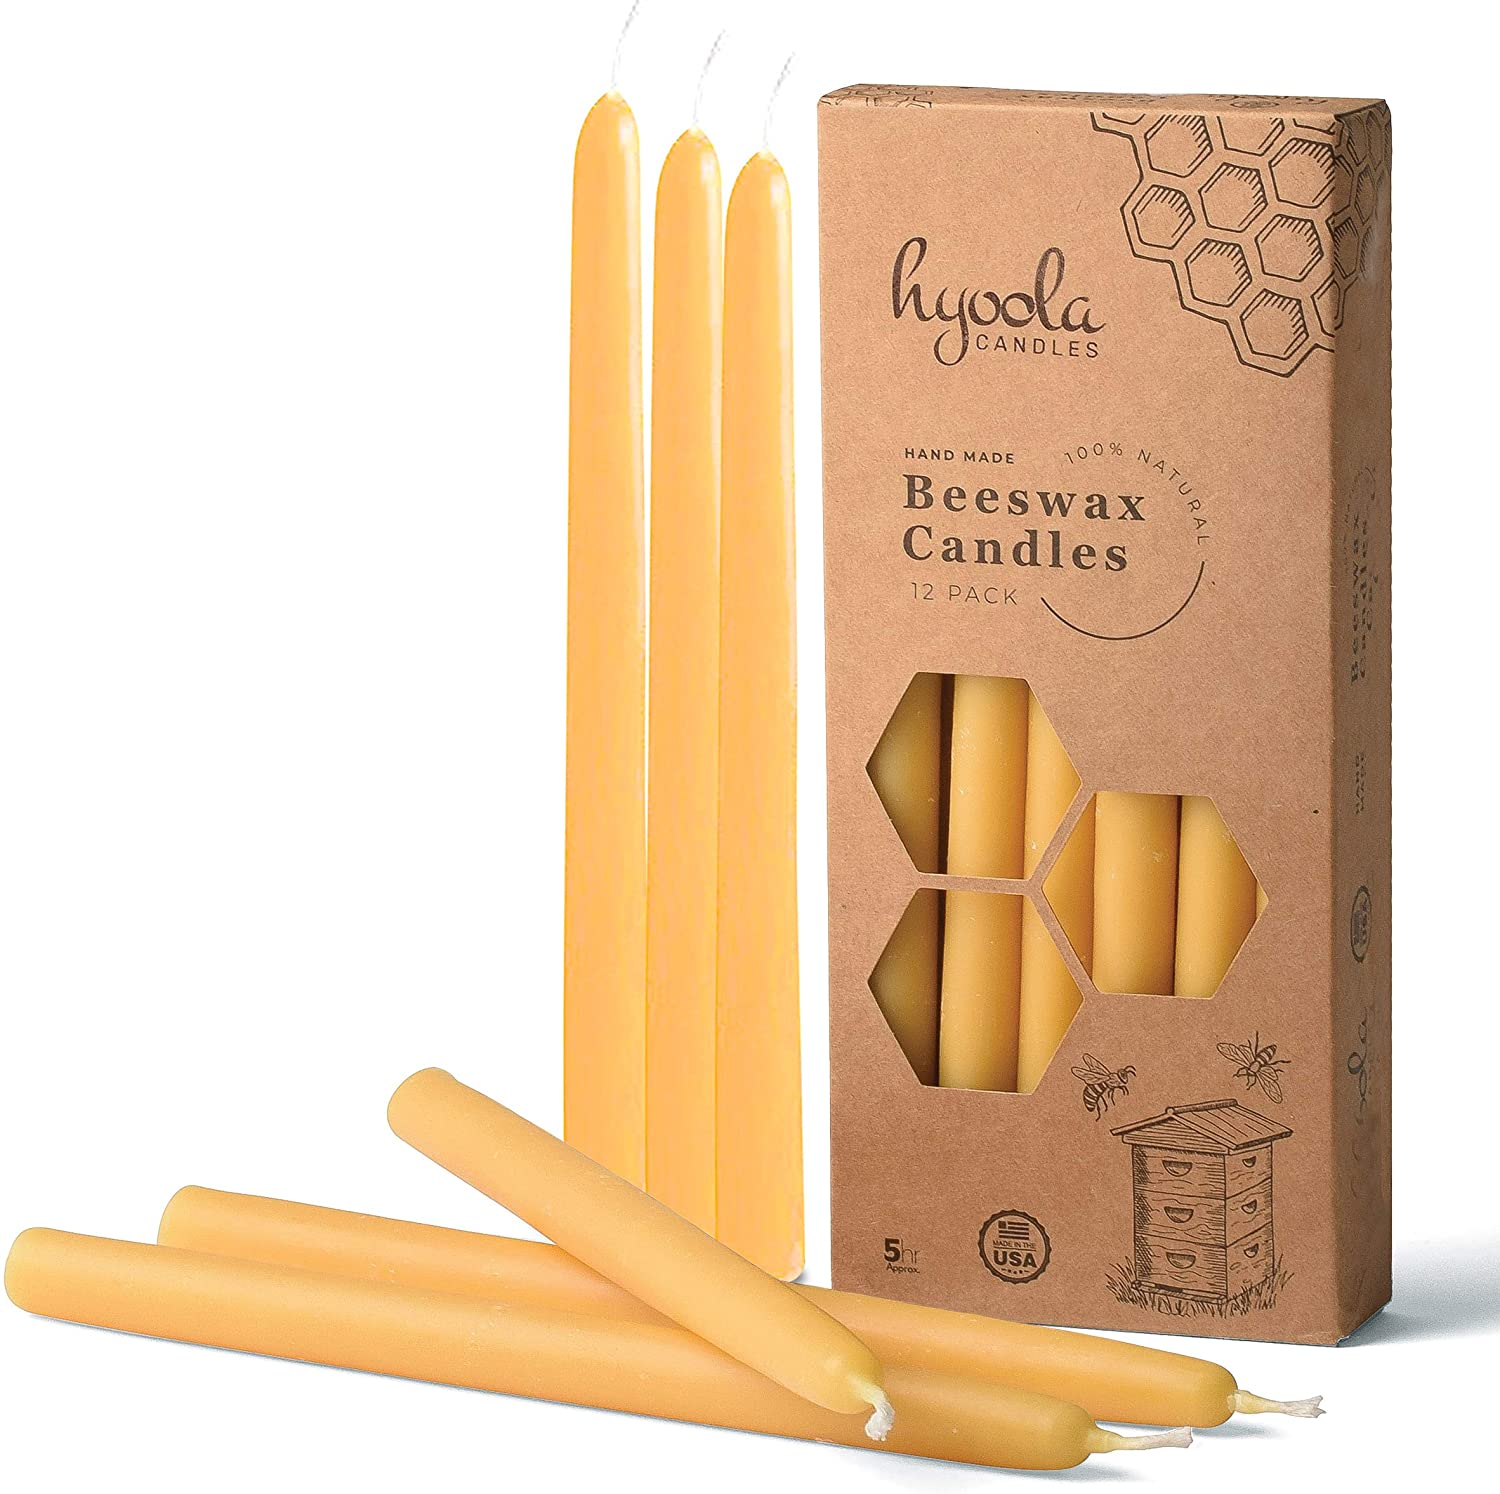 Amazon Com Hyoola 9 Inch Beeswax Taper Candles 12 Pack Handmade All Natural 100 Pure Unscented Bee Wax Candle Tall Decorative Golden Yellow 5 Hour Burn Time Home Improvement